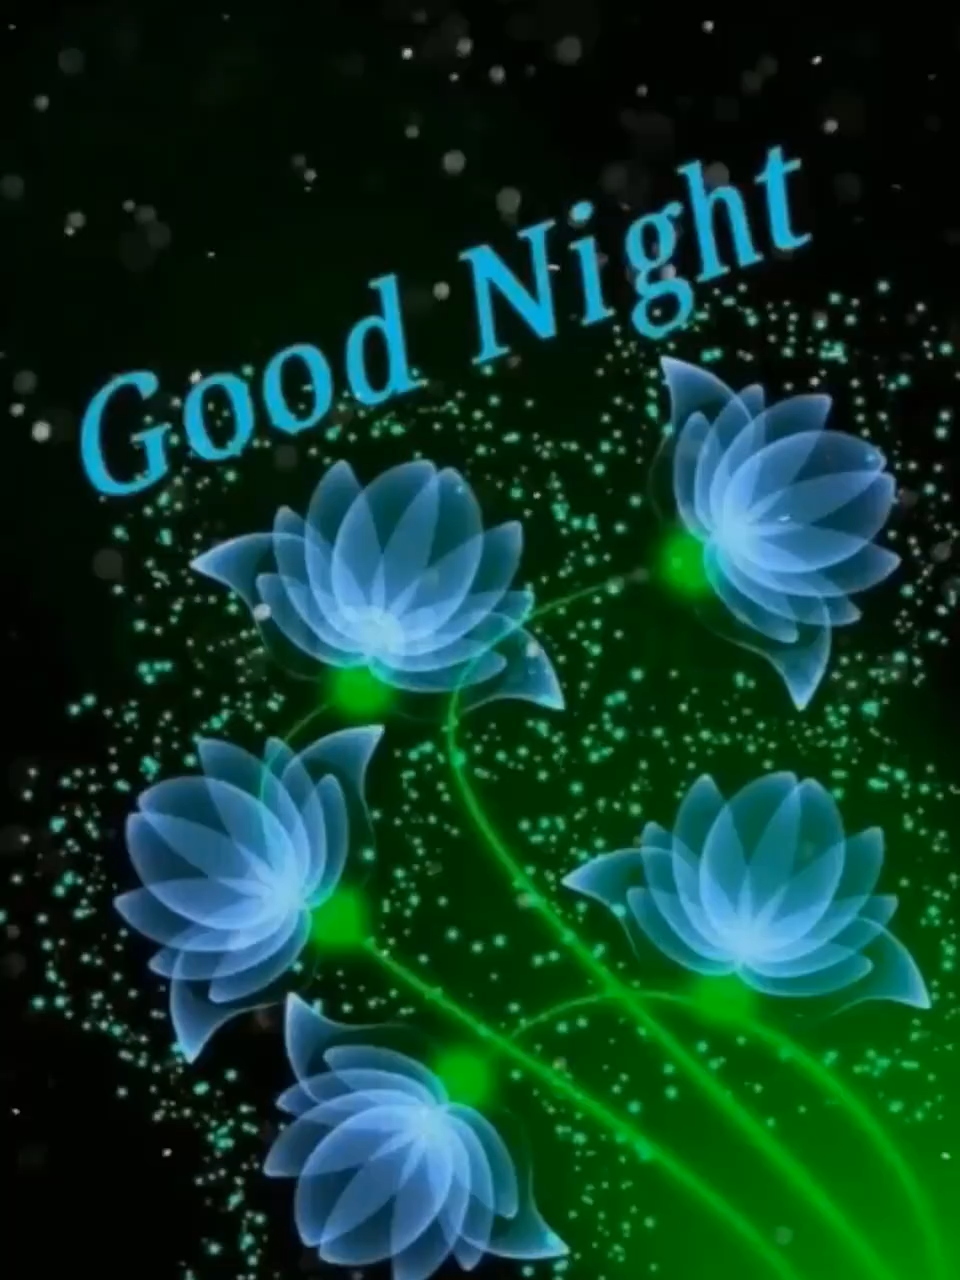 Have A Peaceful Night Video Good Night Love Images Romantic Good Night Good Night Friends